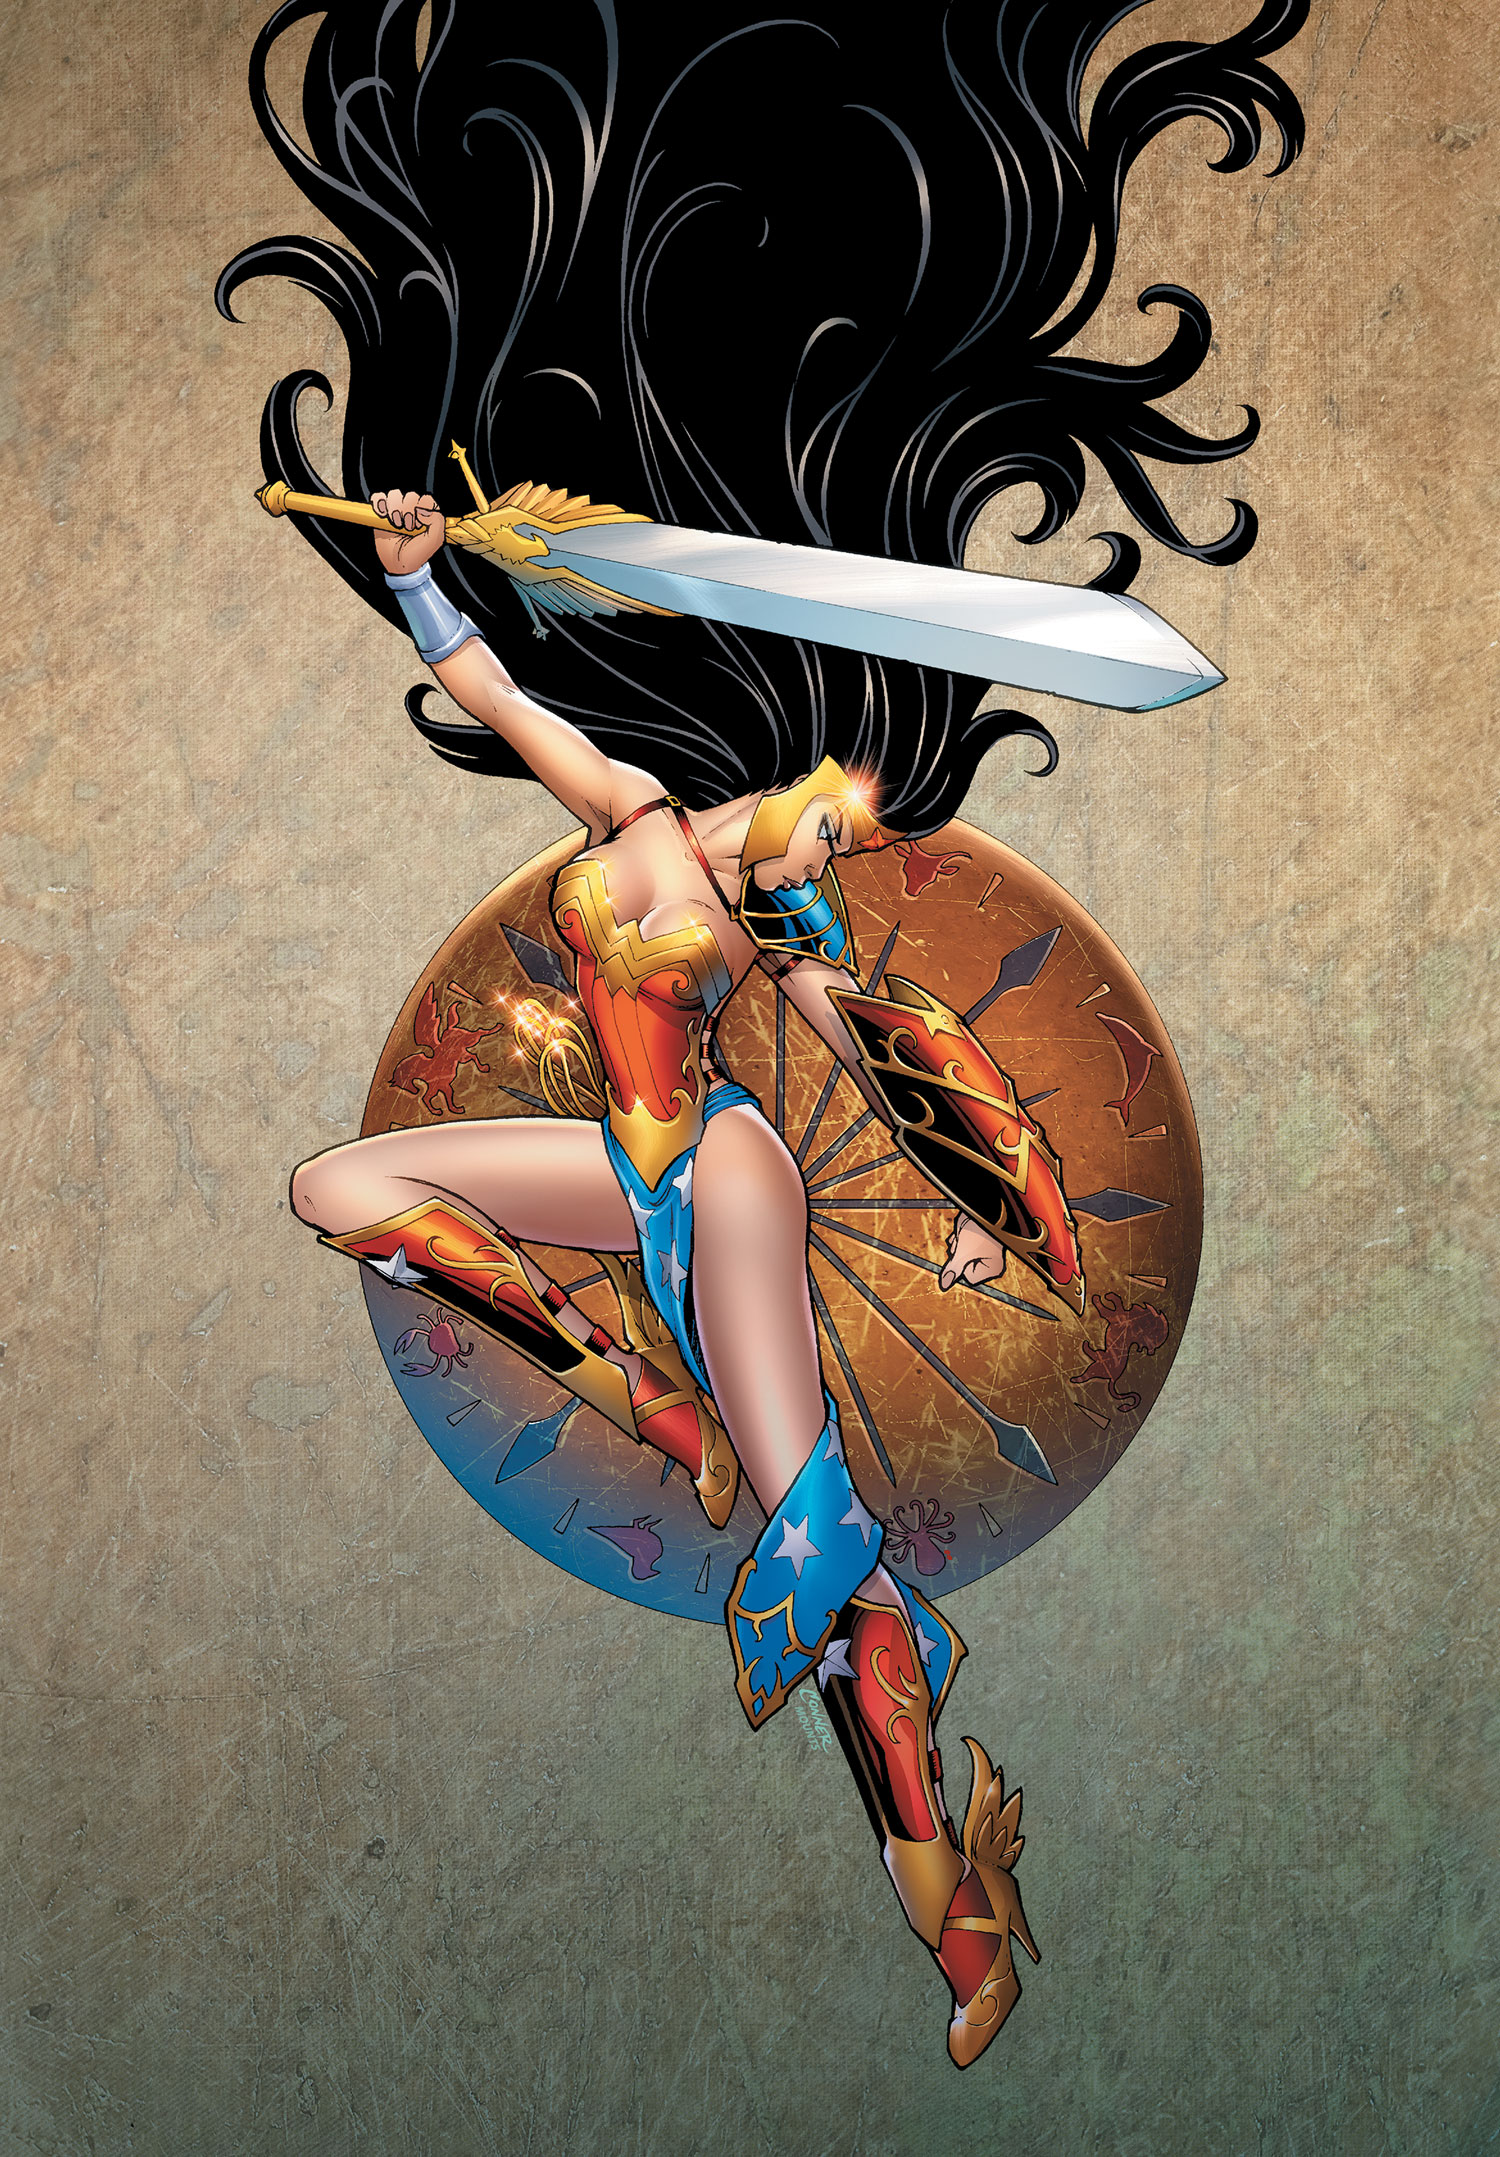 Diana of Themyscira (Ame-Comi)